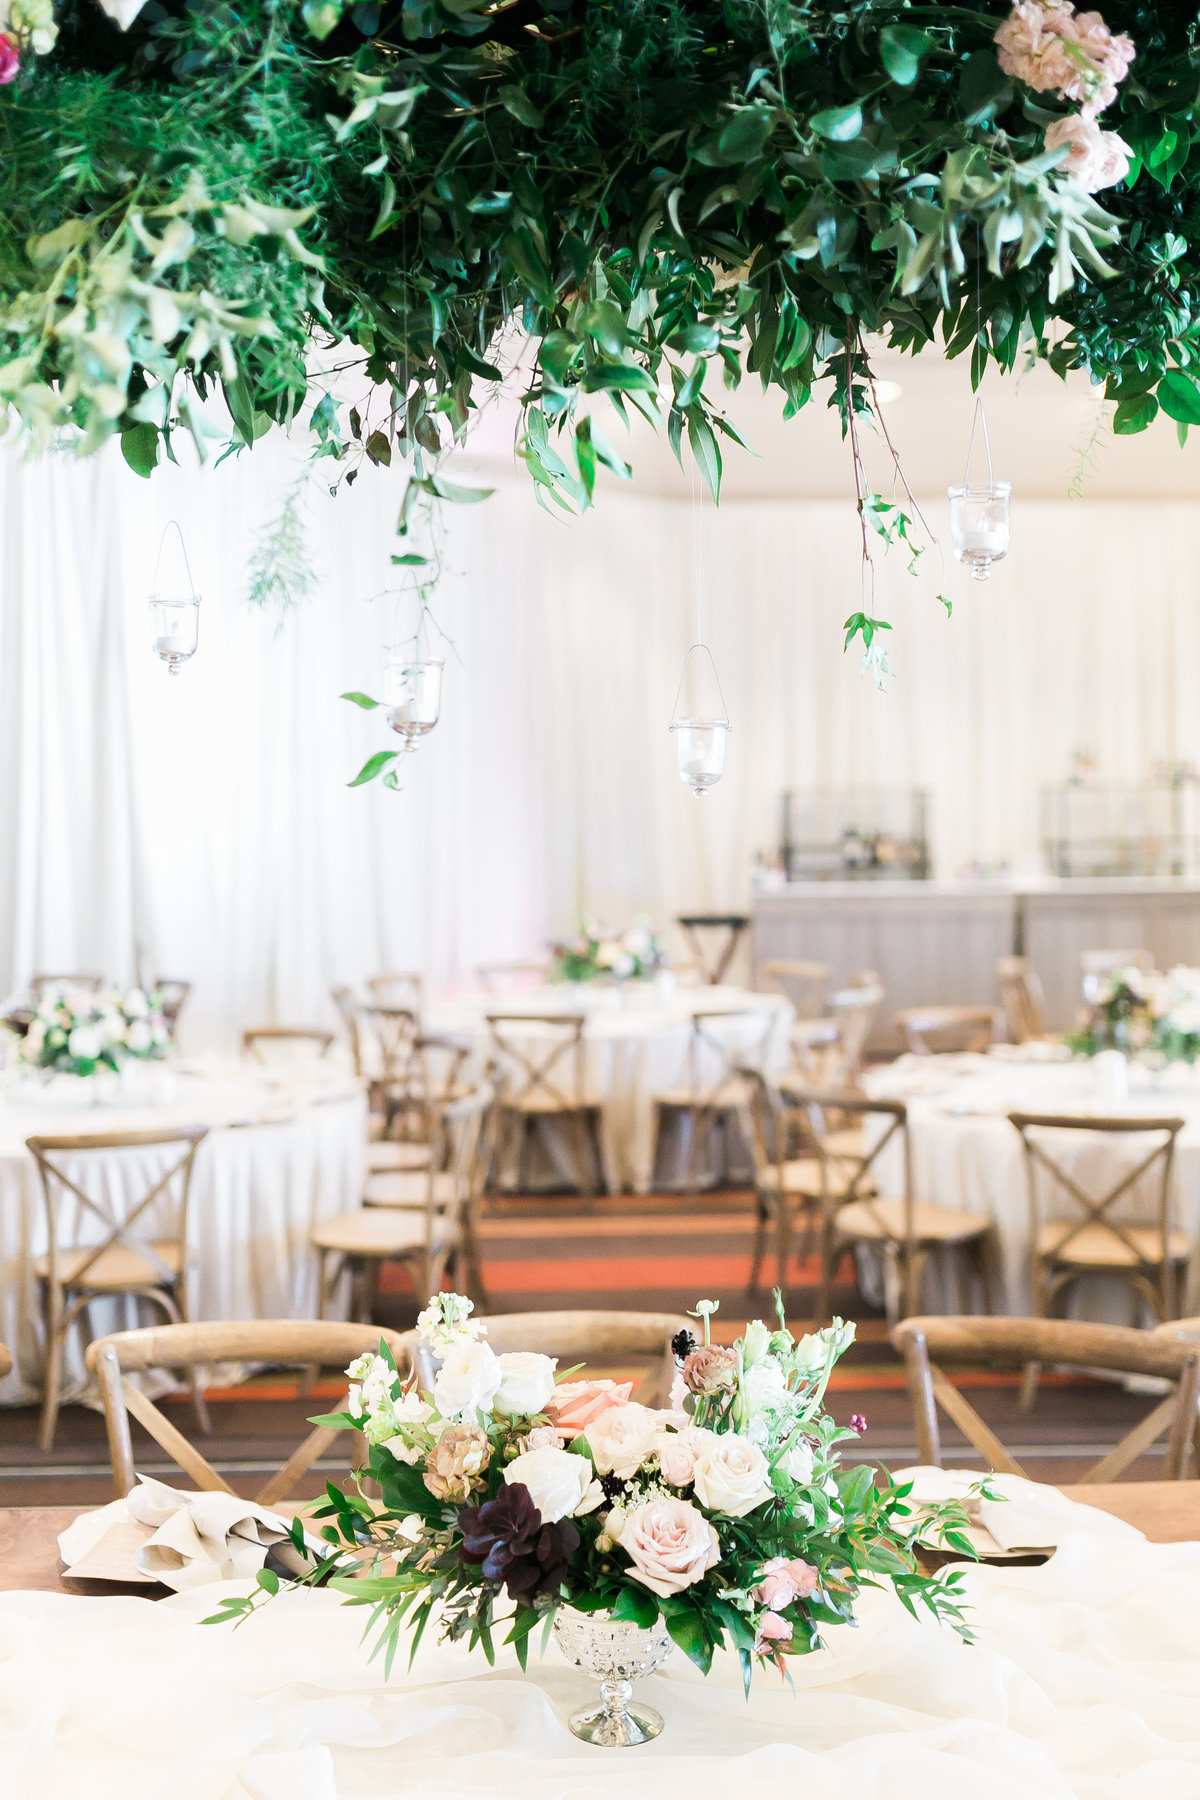 Hyatt Regency Lake Tahoe Wedding in ballroom with rustic wood chairs and floral centerpieces